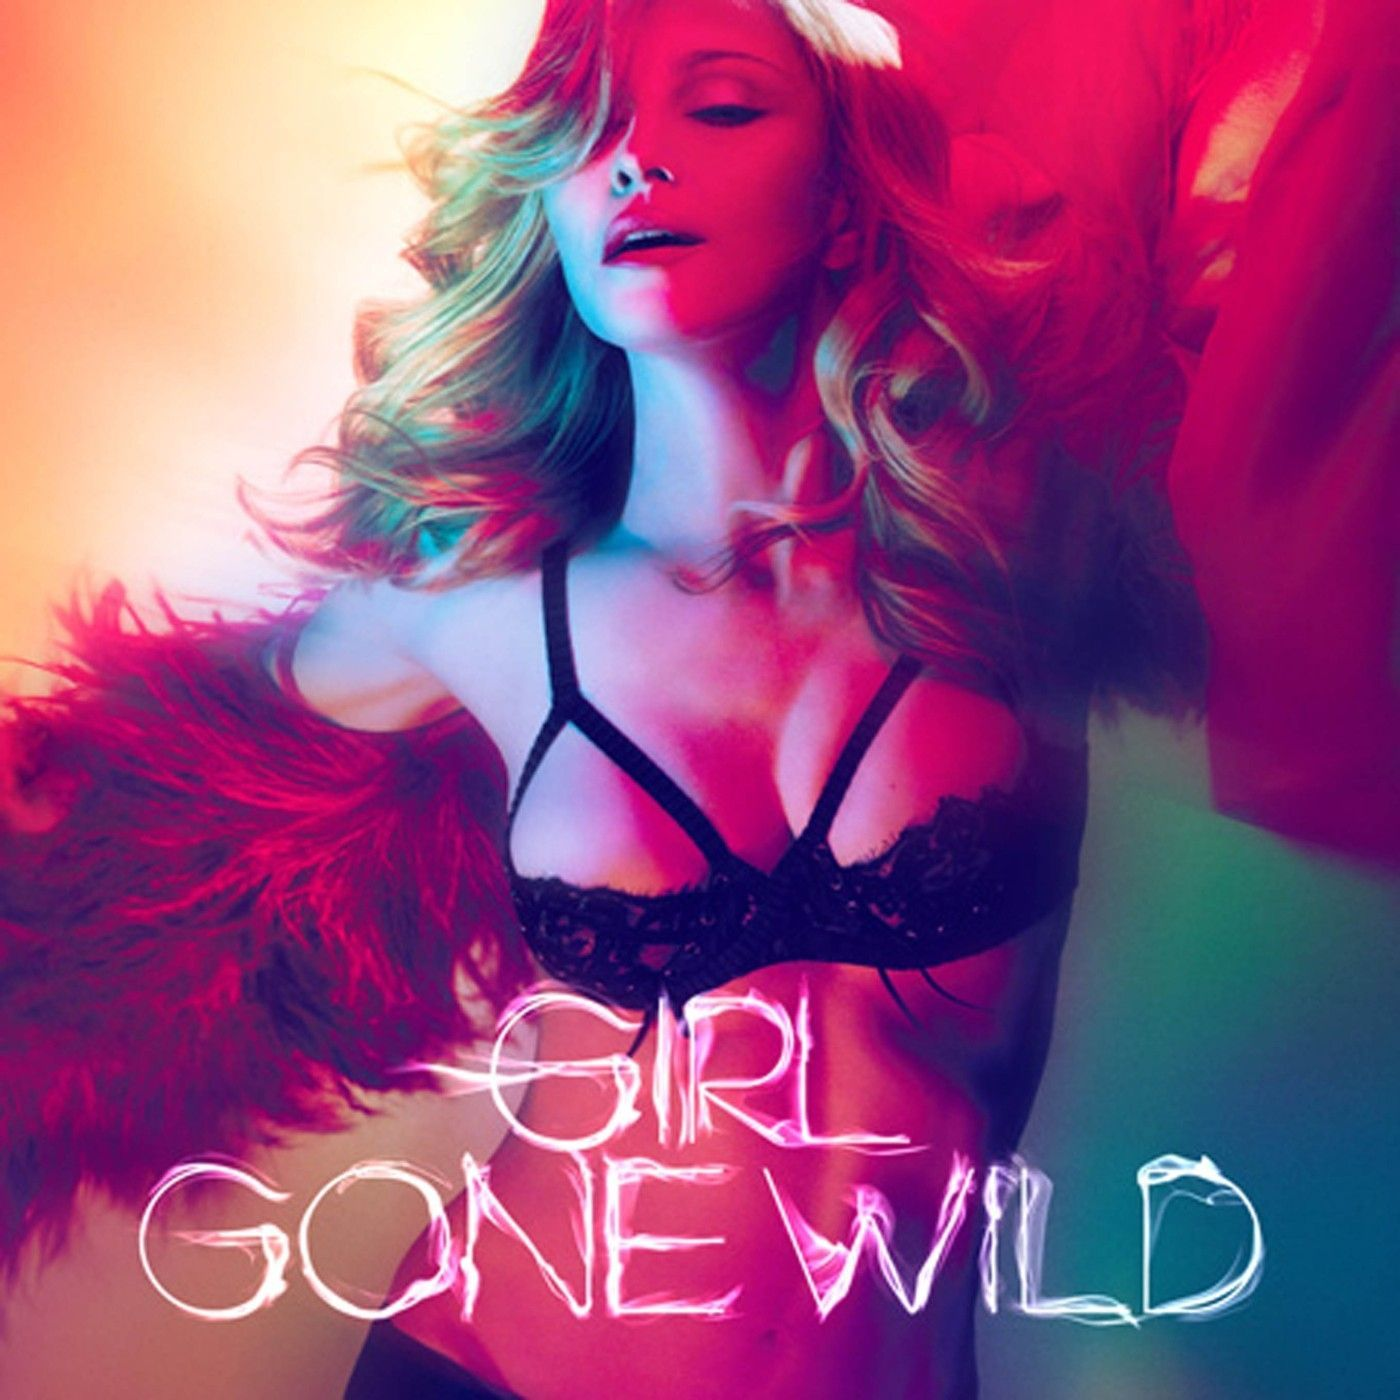 Madonna v klipu 'Girl gone wild'